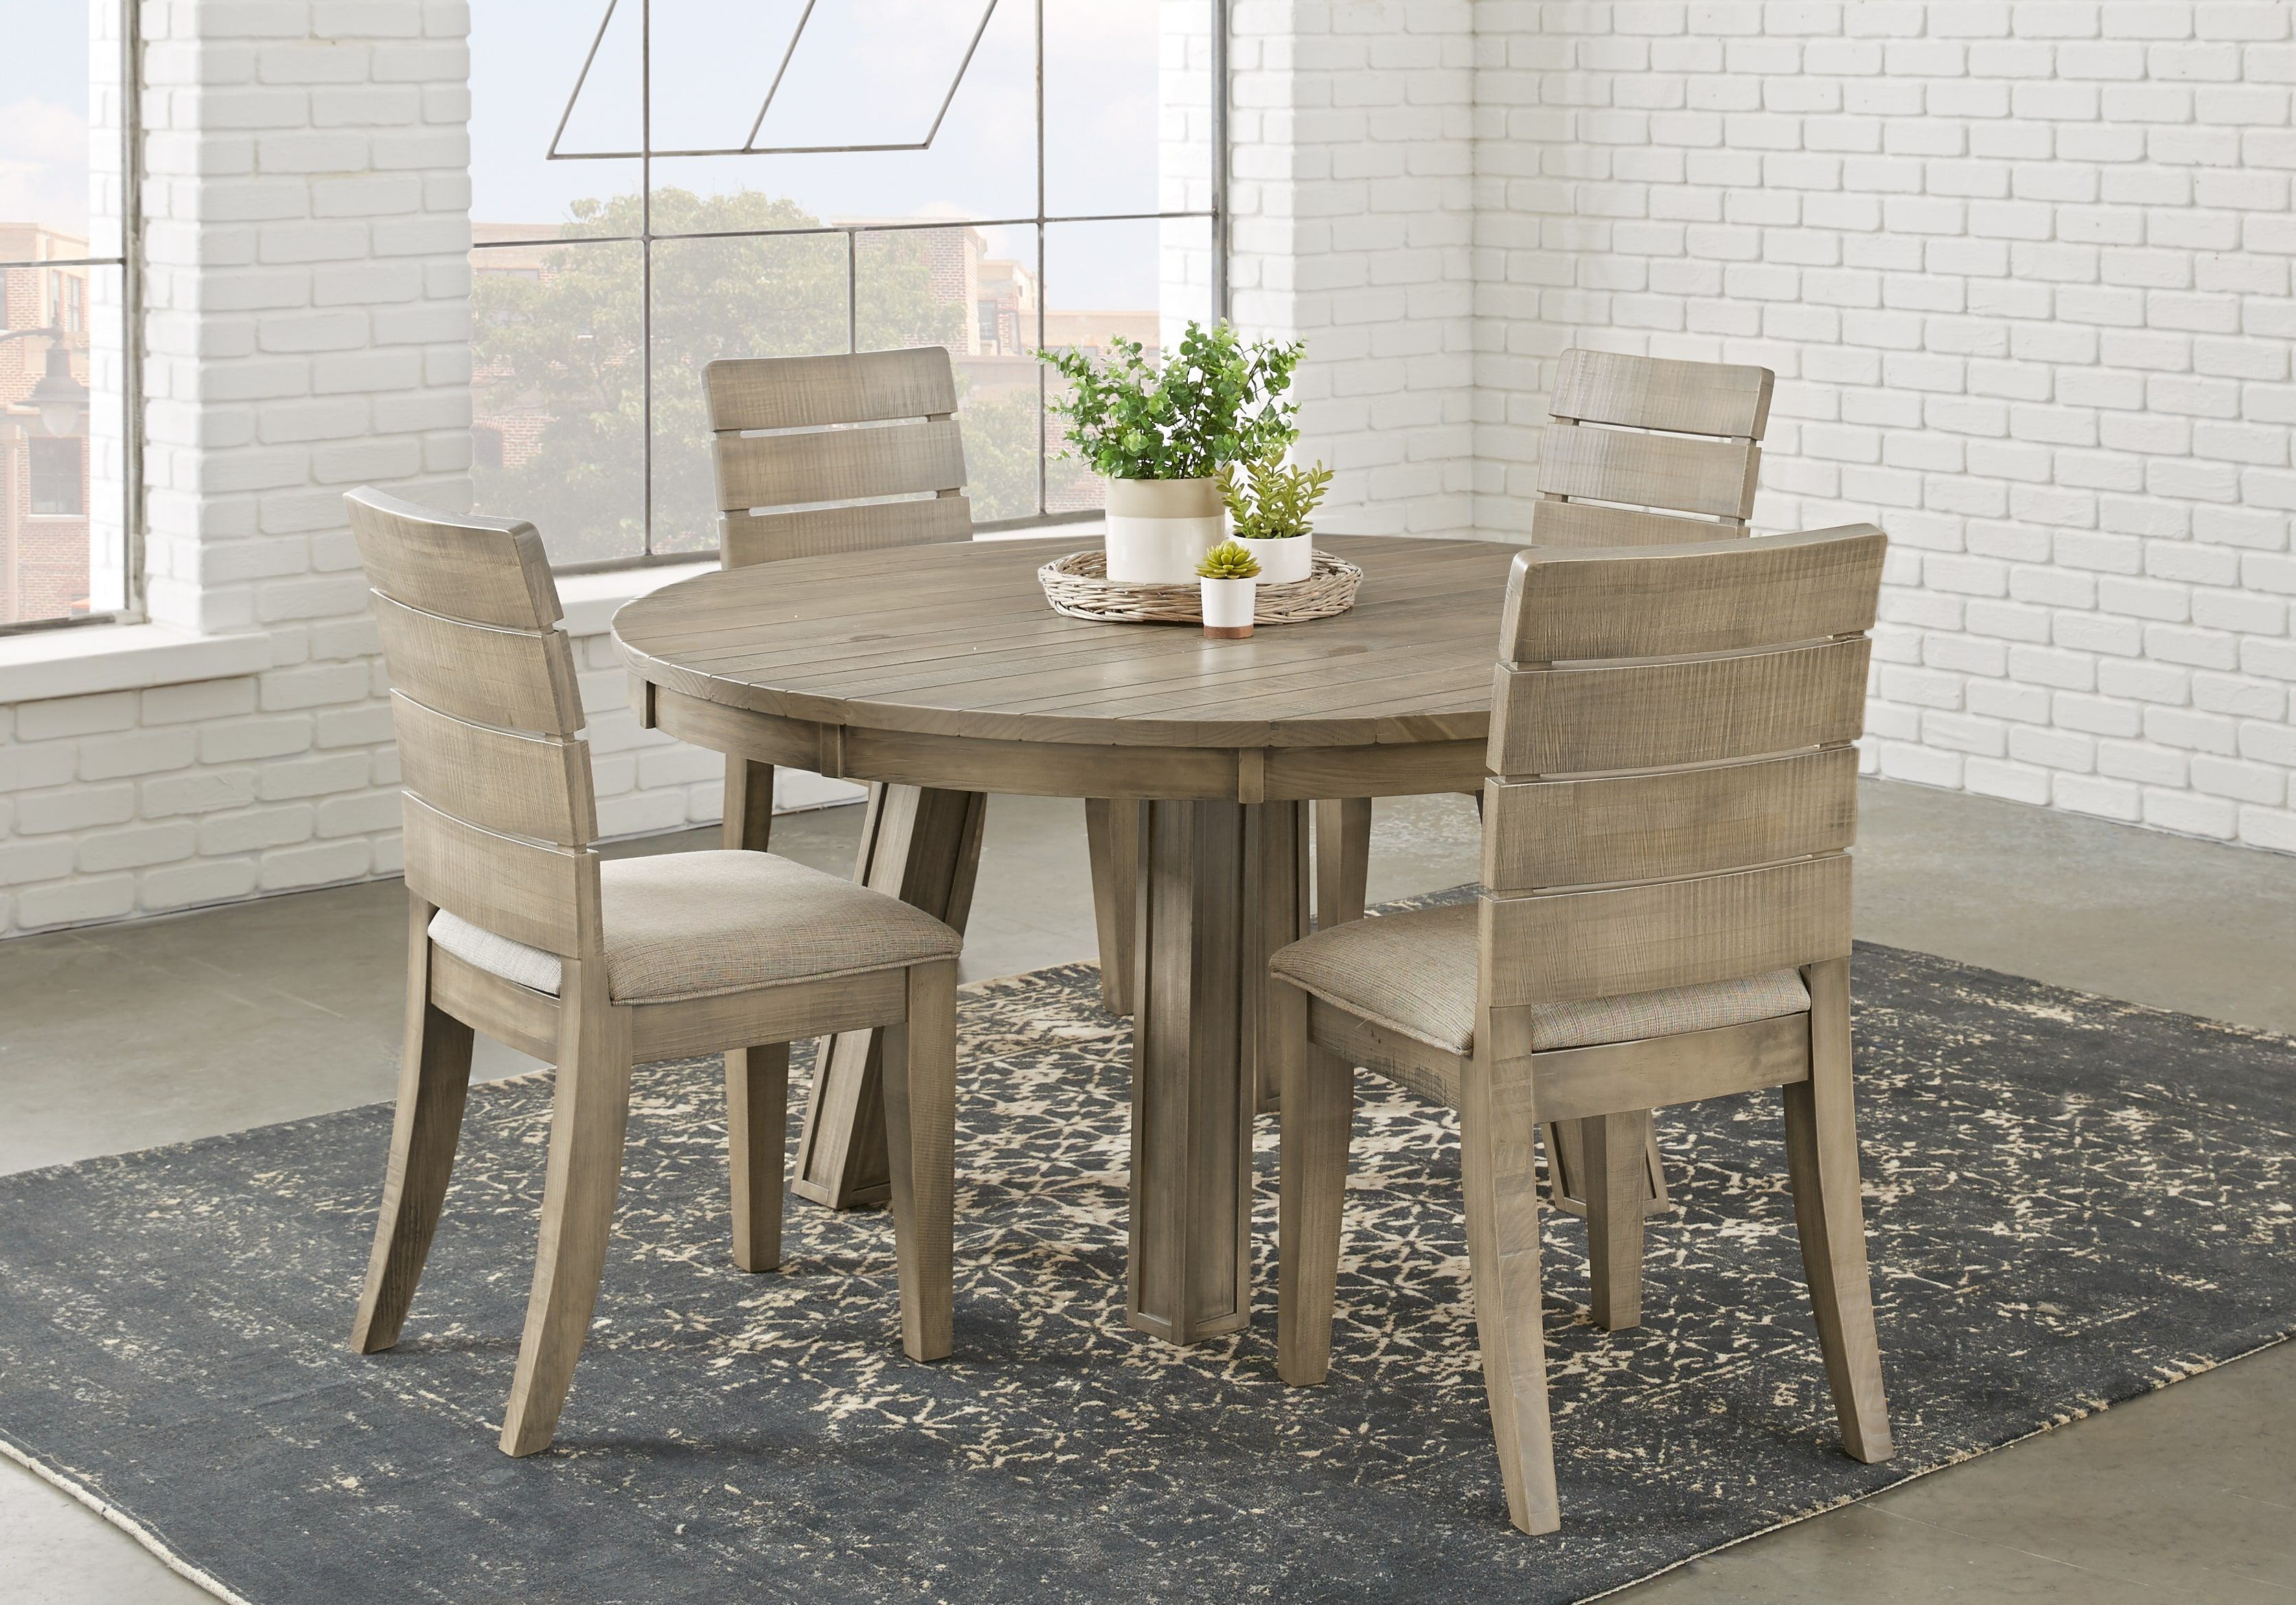 Crestwood Creek Gray 5 Pc Round Dining Room 799 99 5pc Set Includes Side Chair 4 Dining Table Dining Room Sets Round Dining Room Sets Circular Dining Room